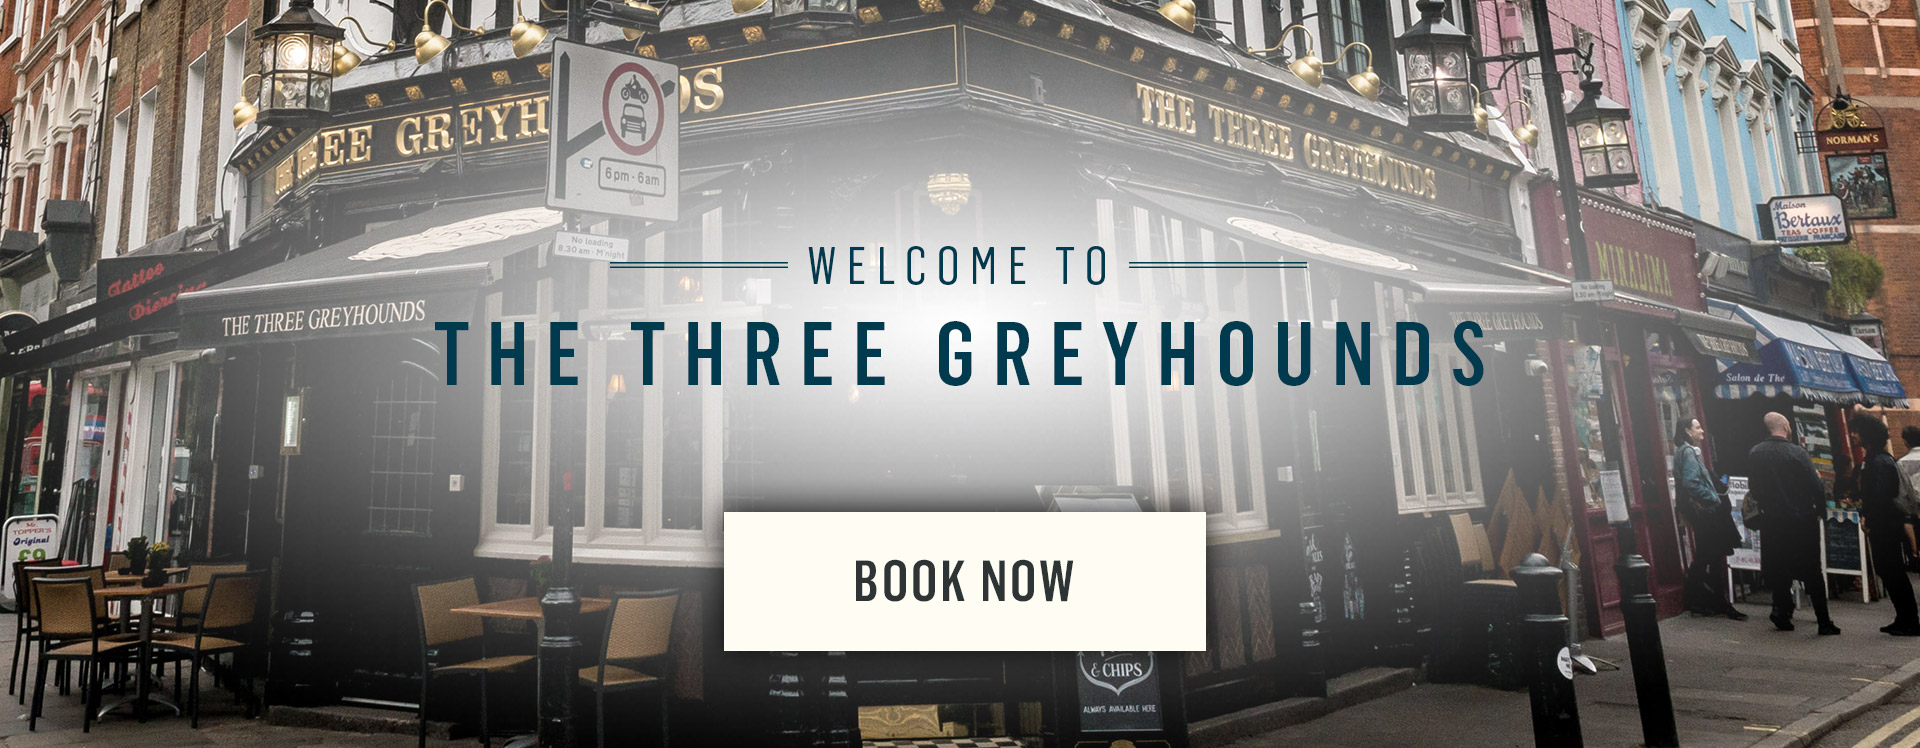 Welcome to The Three Greyhounds - Book Now